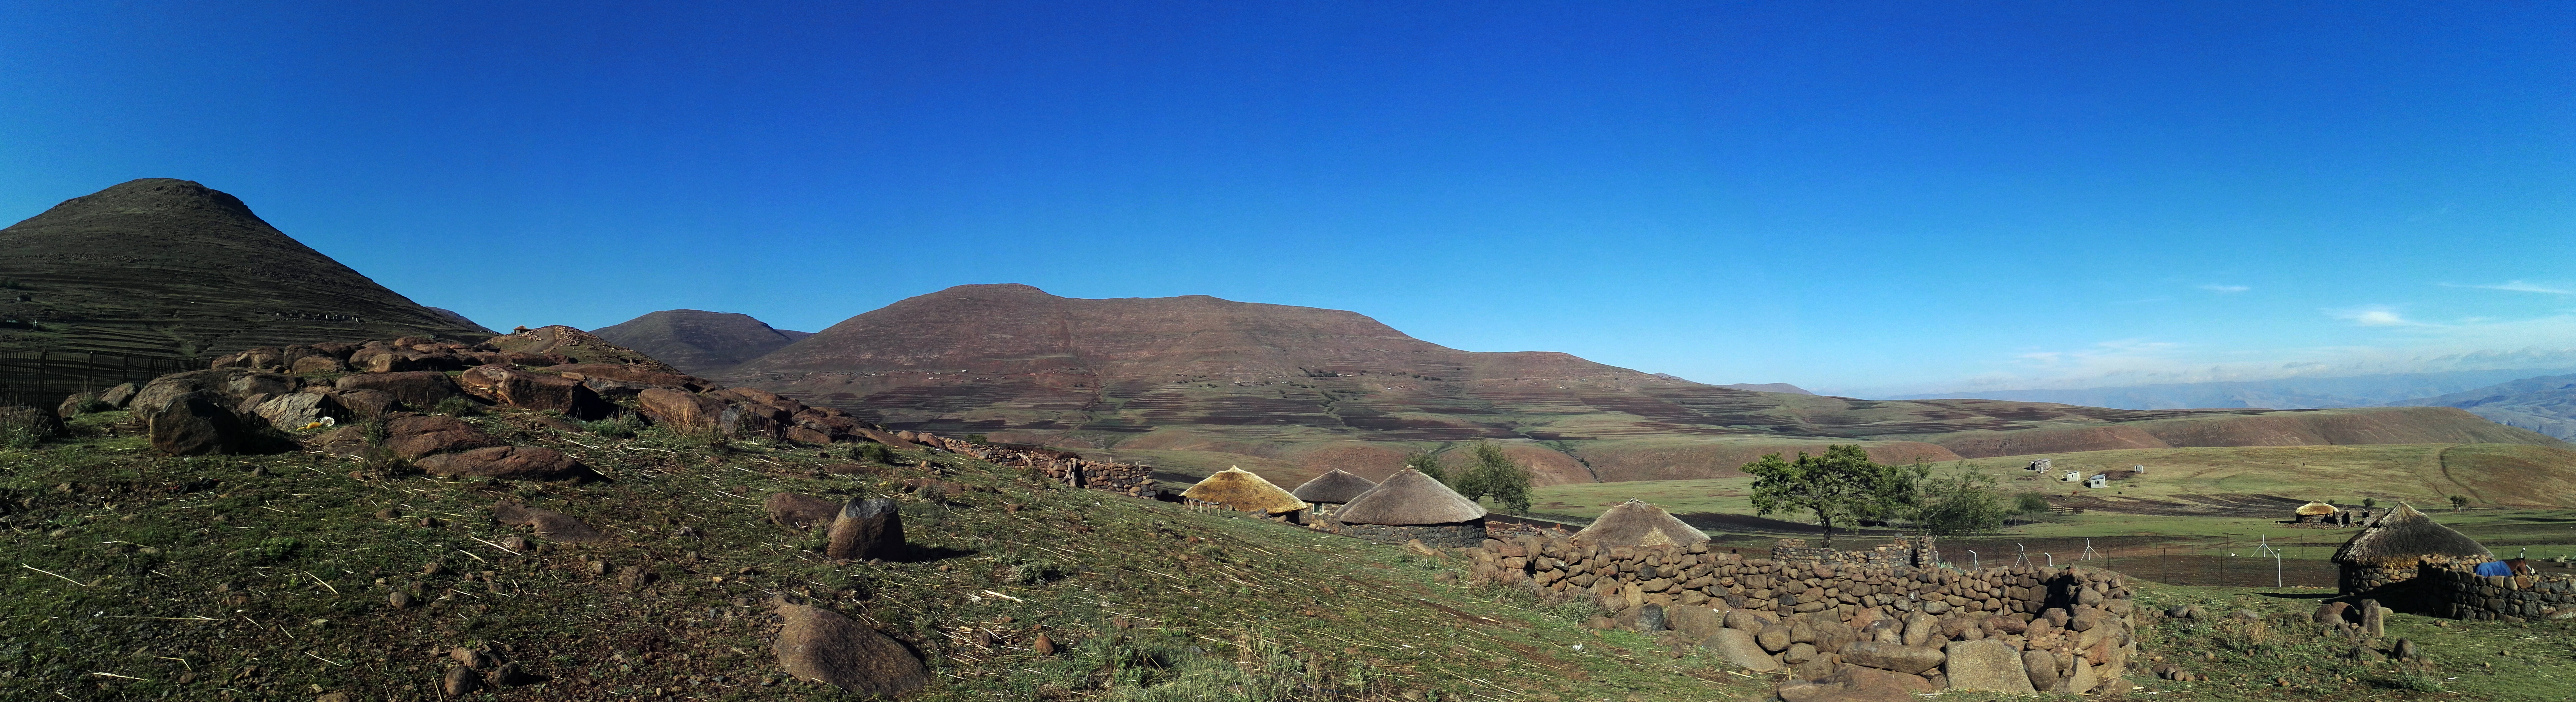 171124_Lesotho-Day2070847